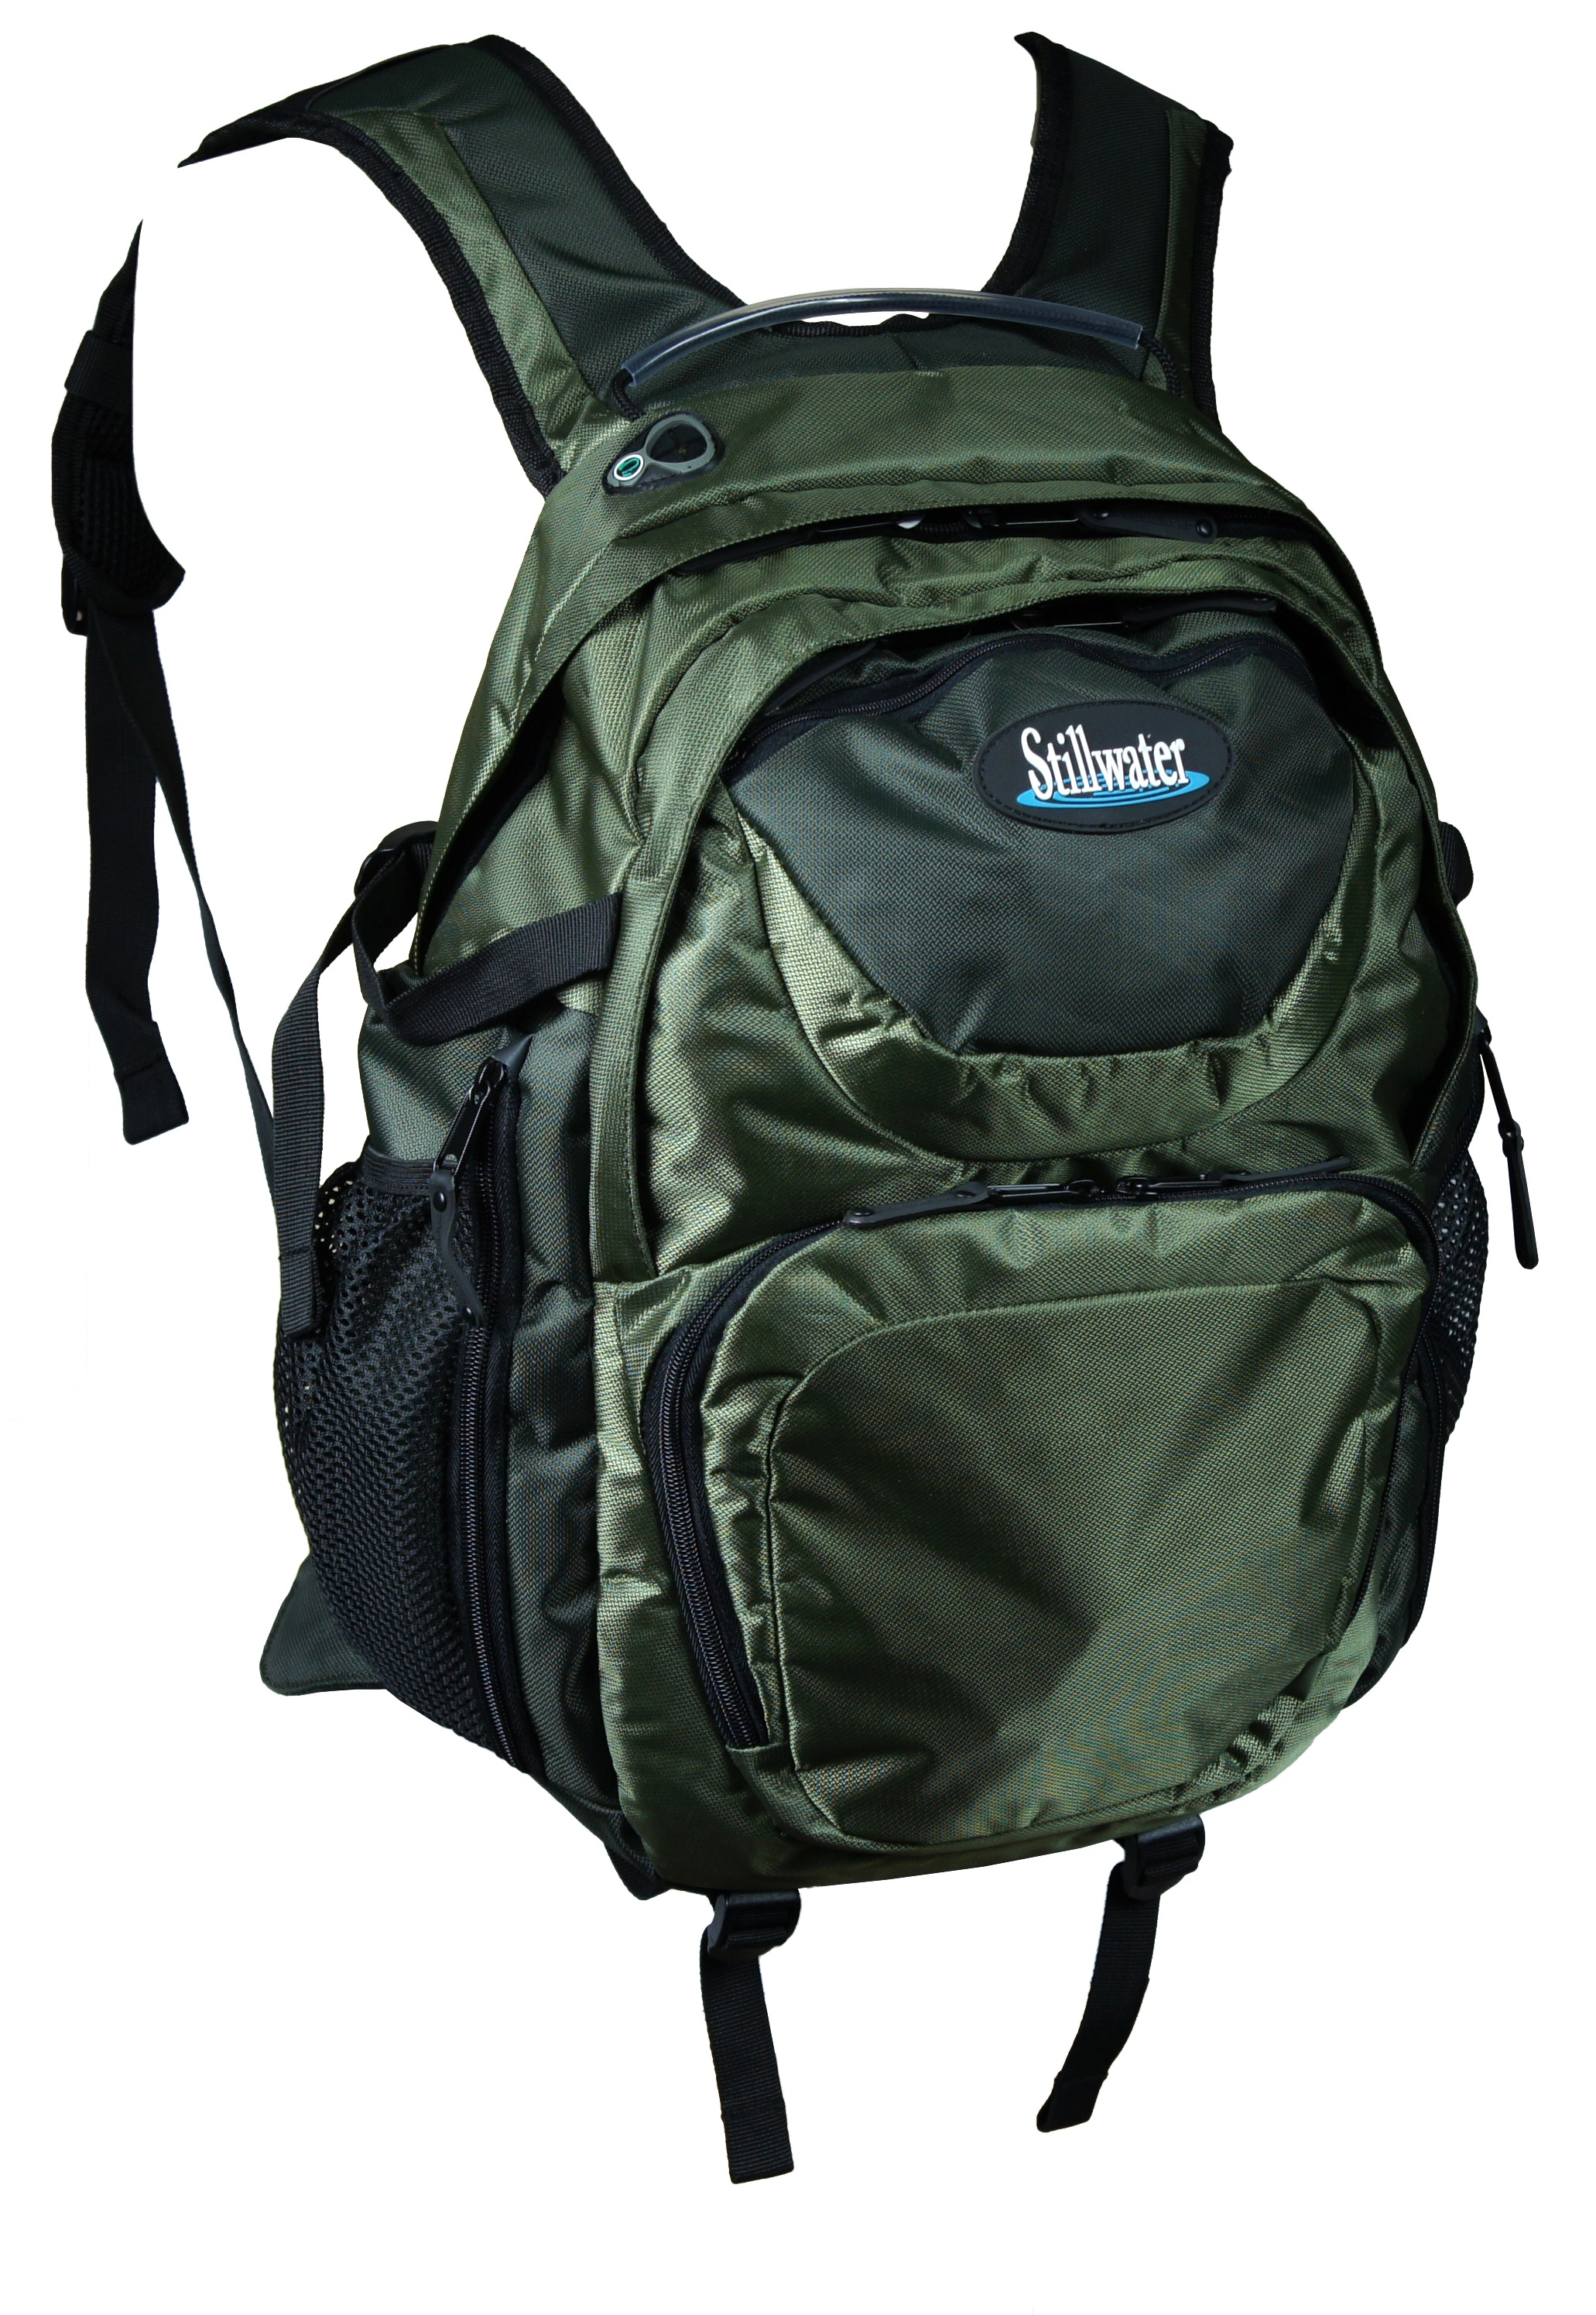 Stillwater carron rucksack chest pack glasgow angling centre for Fishing chest pack